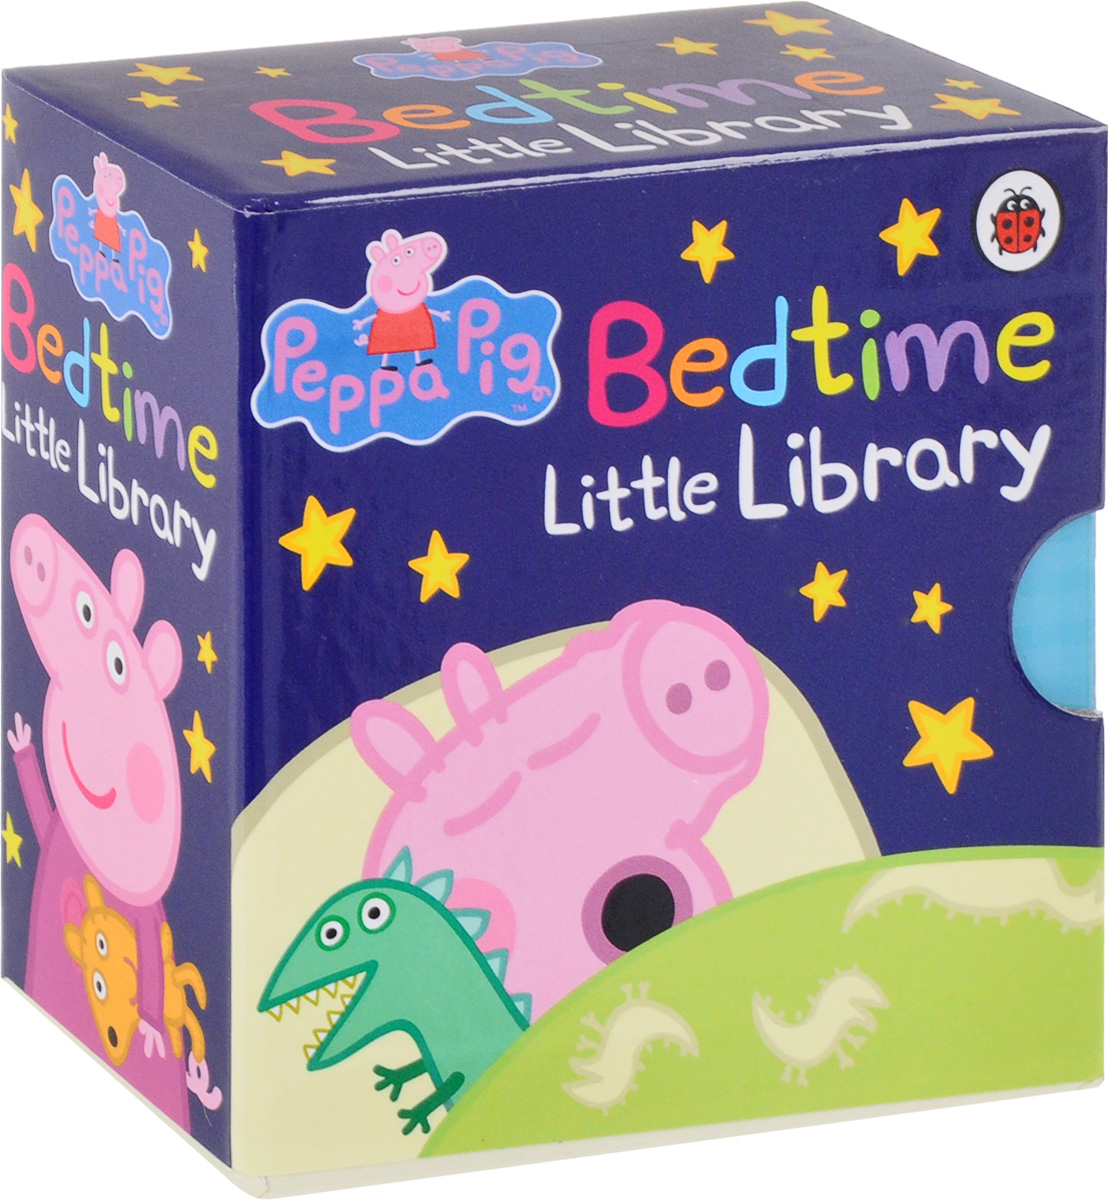 Peppa Pig: Bedtime Little Library original tcl 48e5000 logic board 90 days warranty